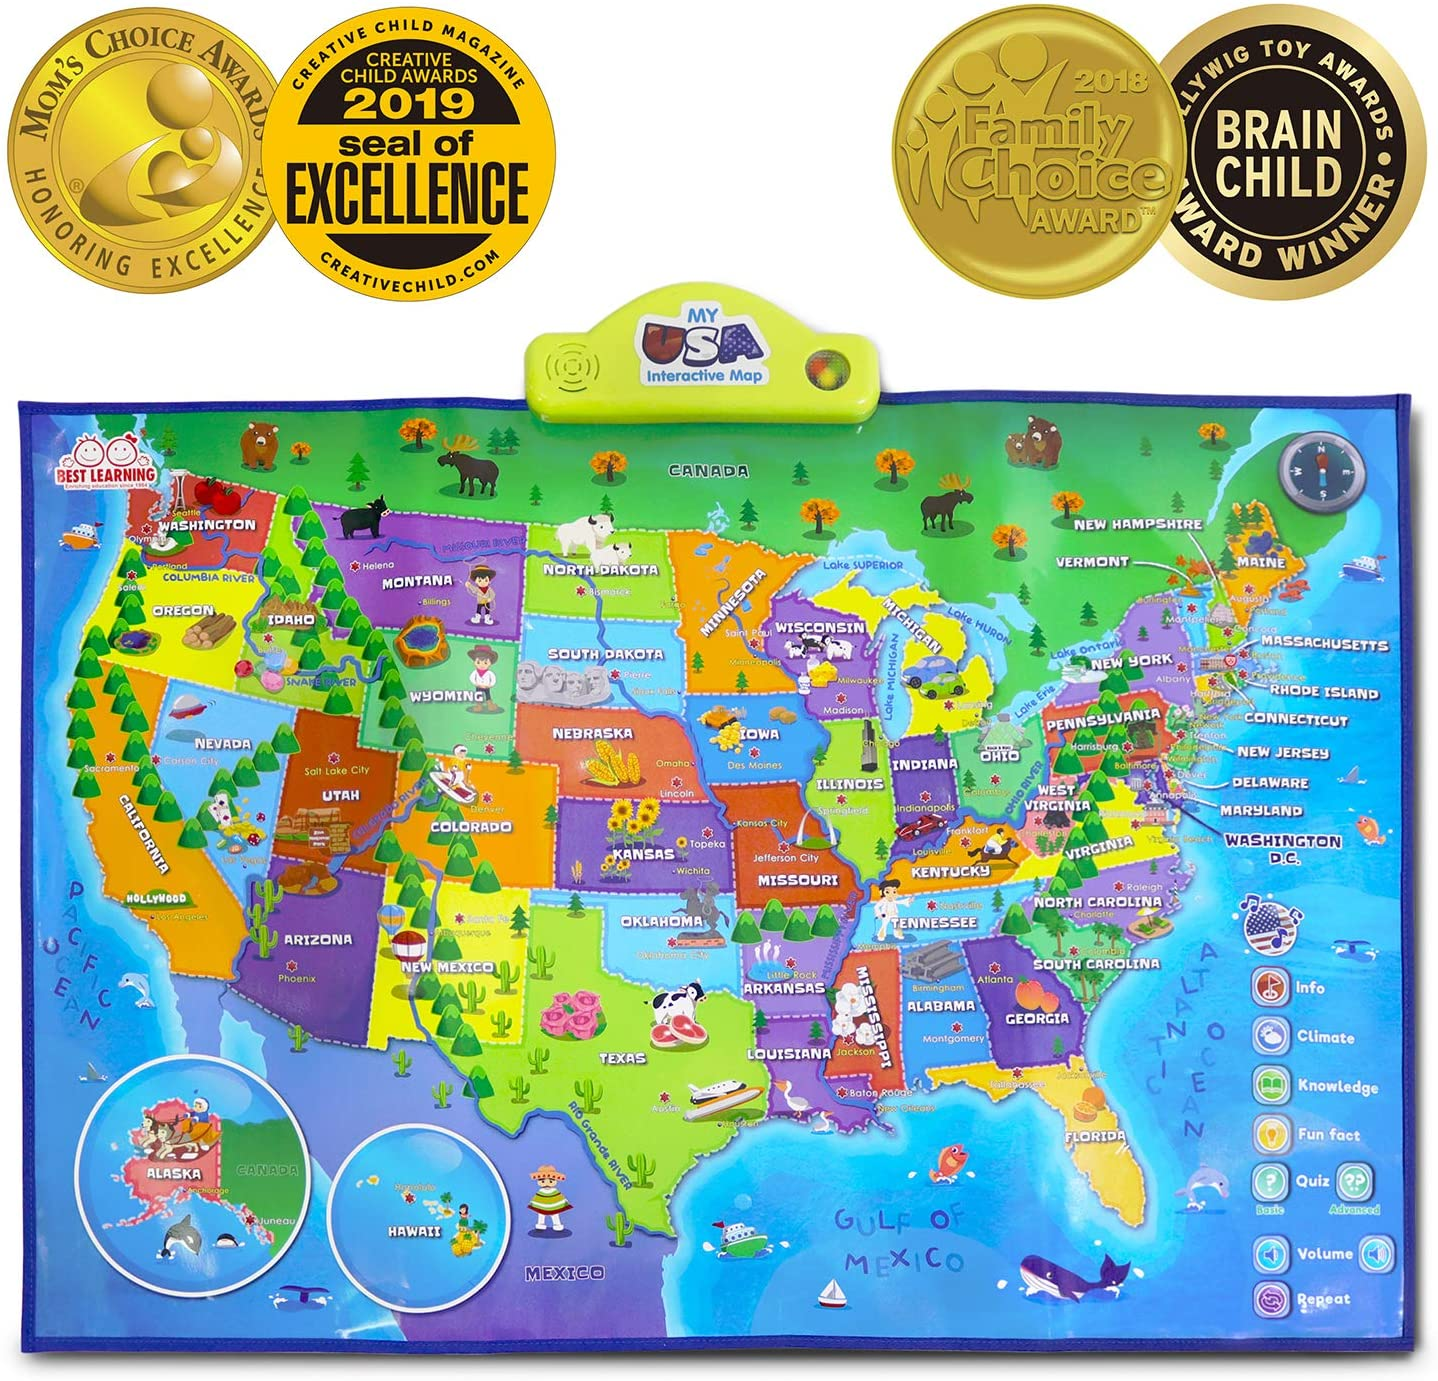 Best Learning iPoster My USA Interactive Map